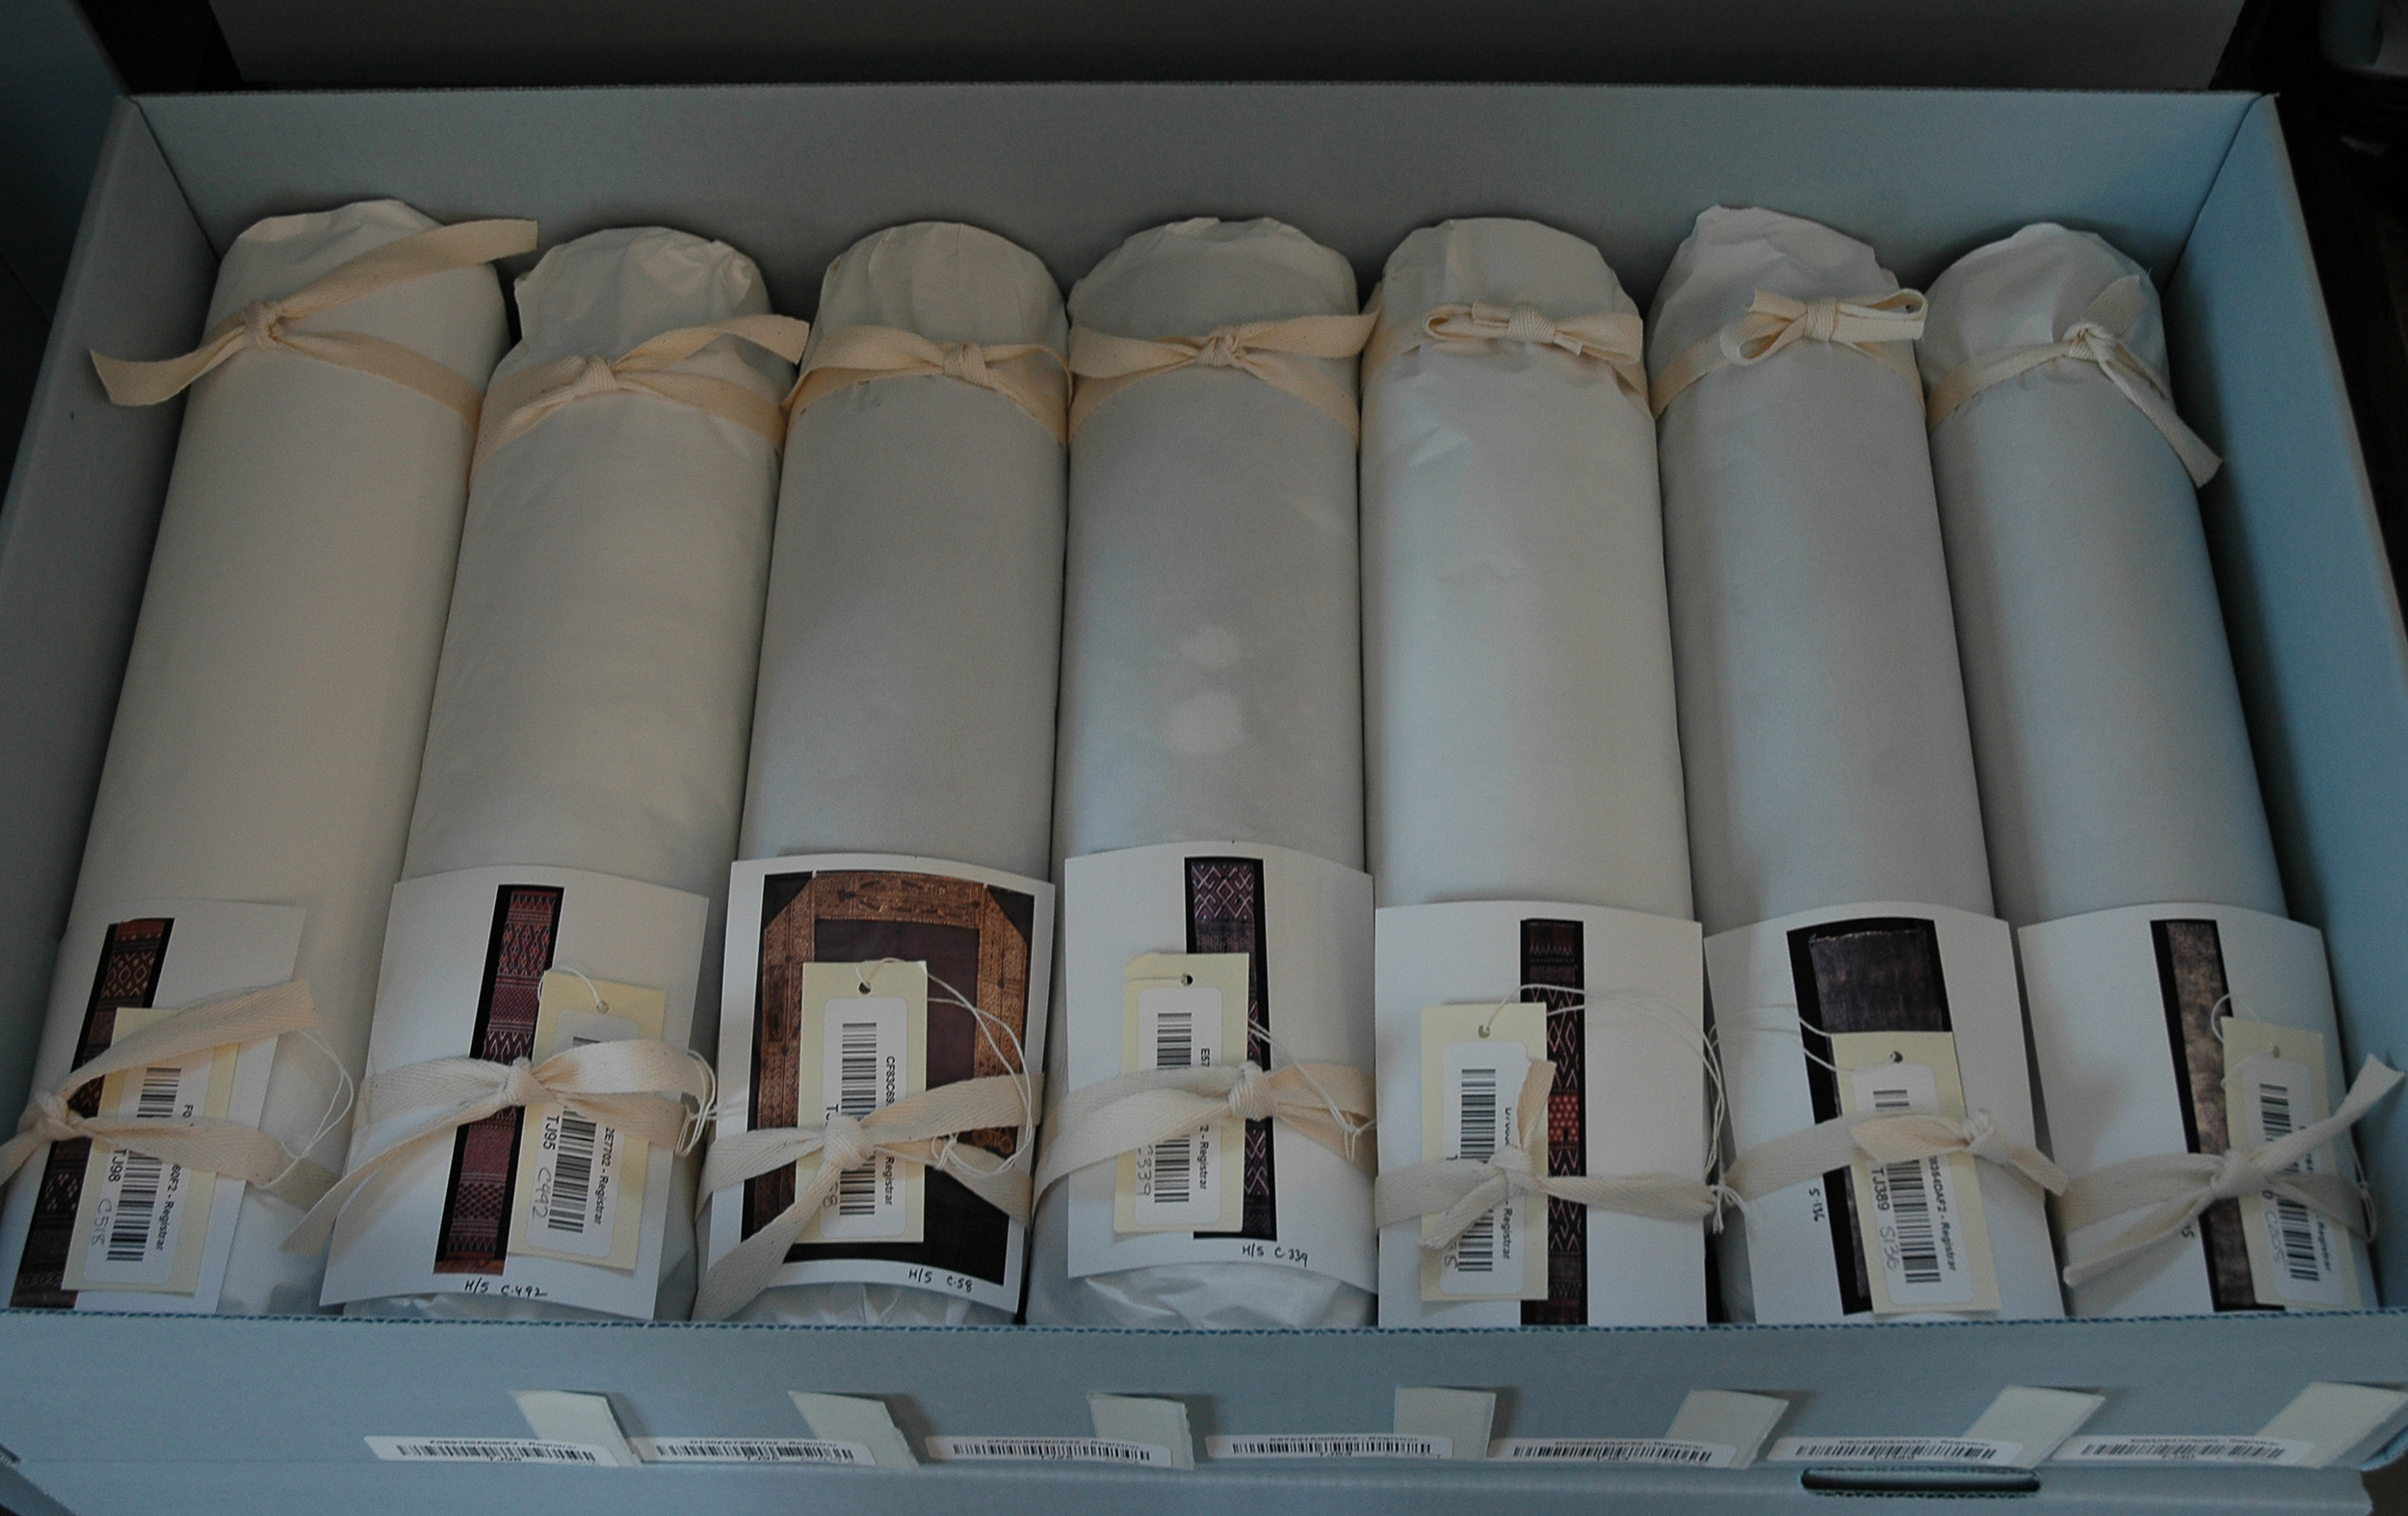 Textiles properly rolled, boxed and labeled for storage